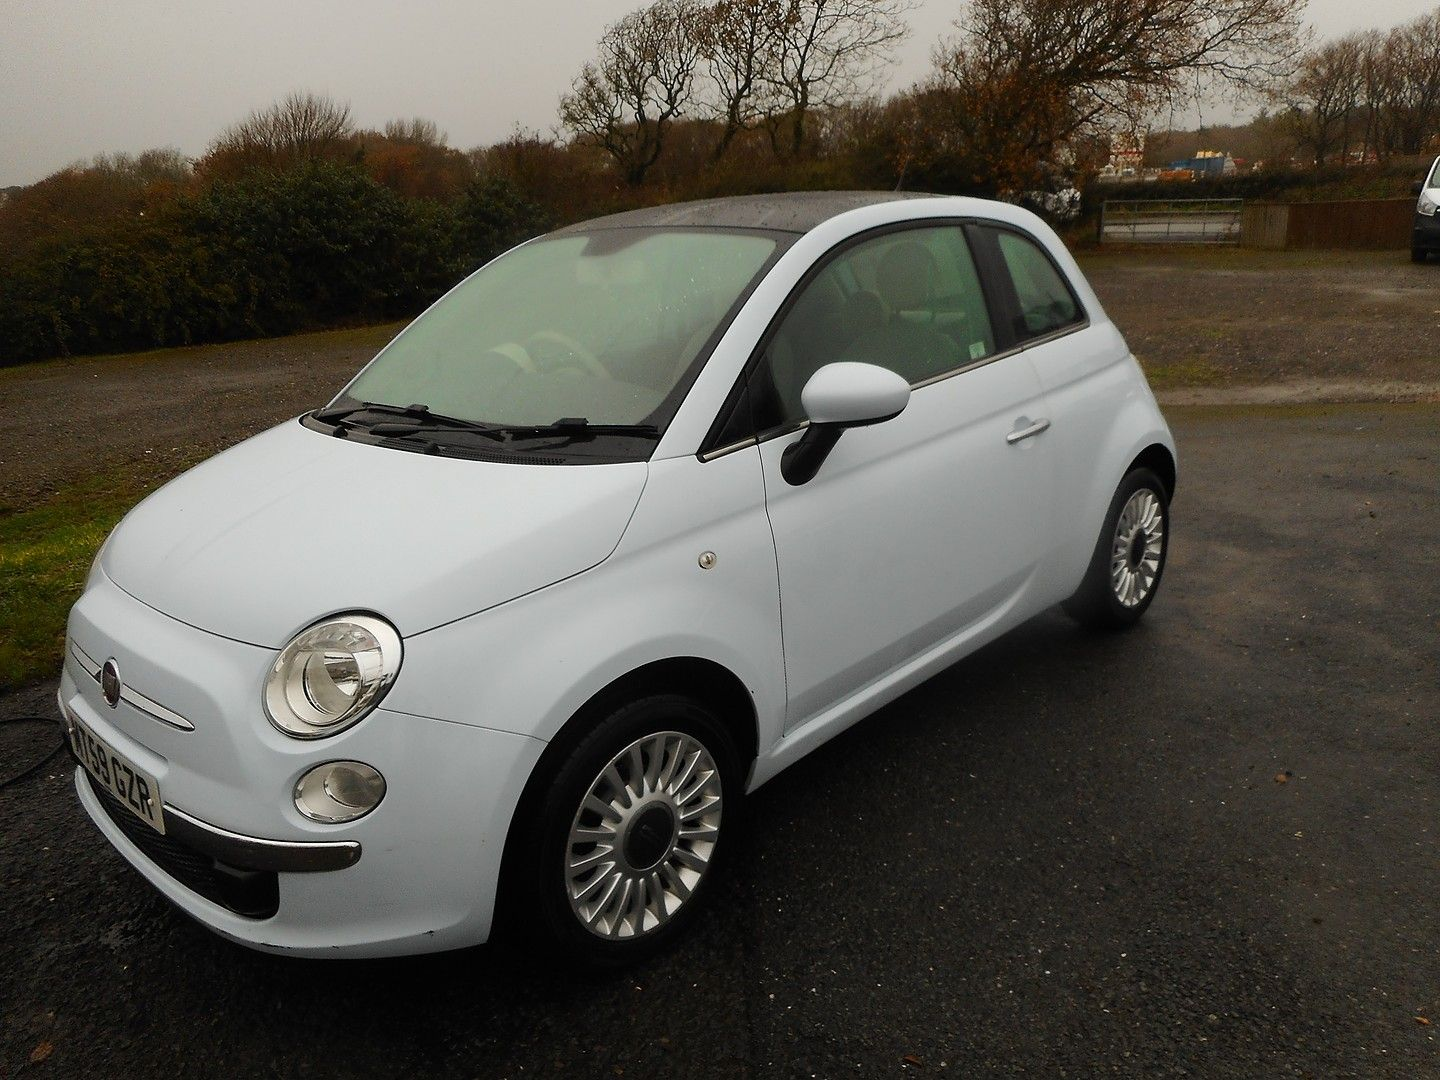 FIAT 500 1.2i Lounge (2010) - Picture 2